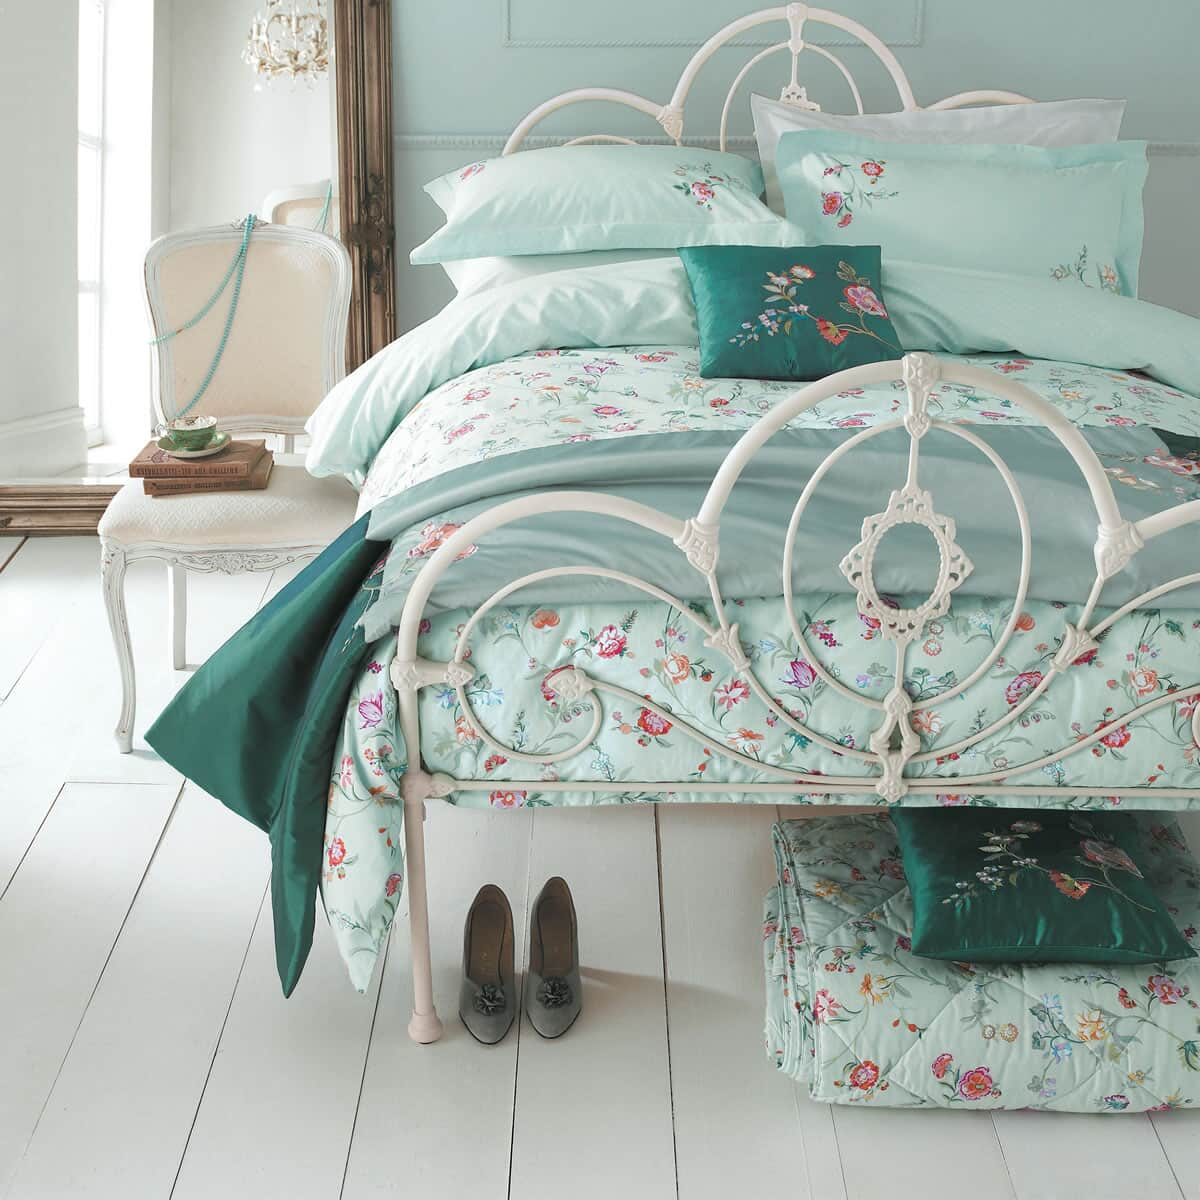 Country Meadow Justlinen